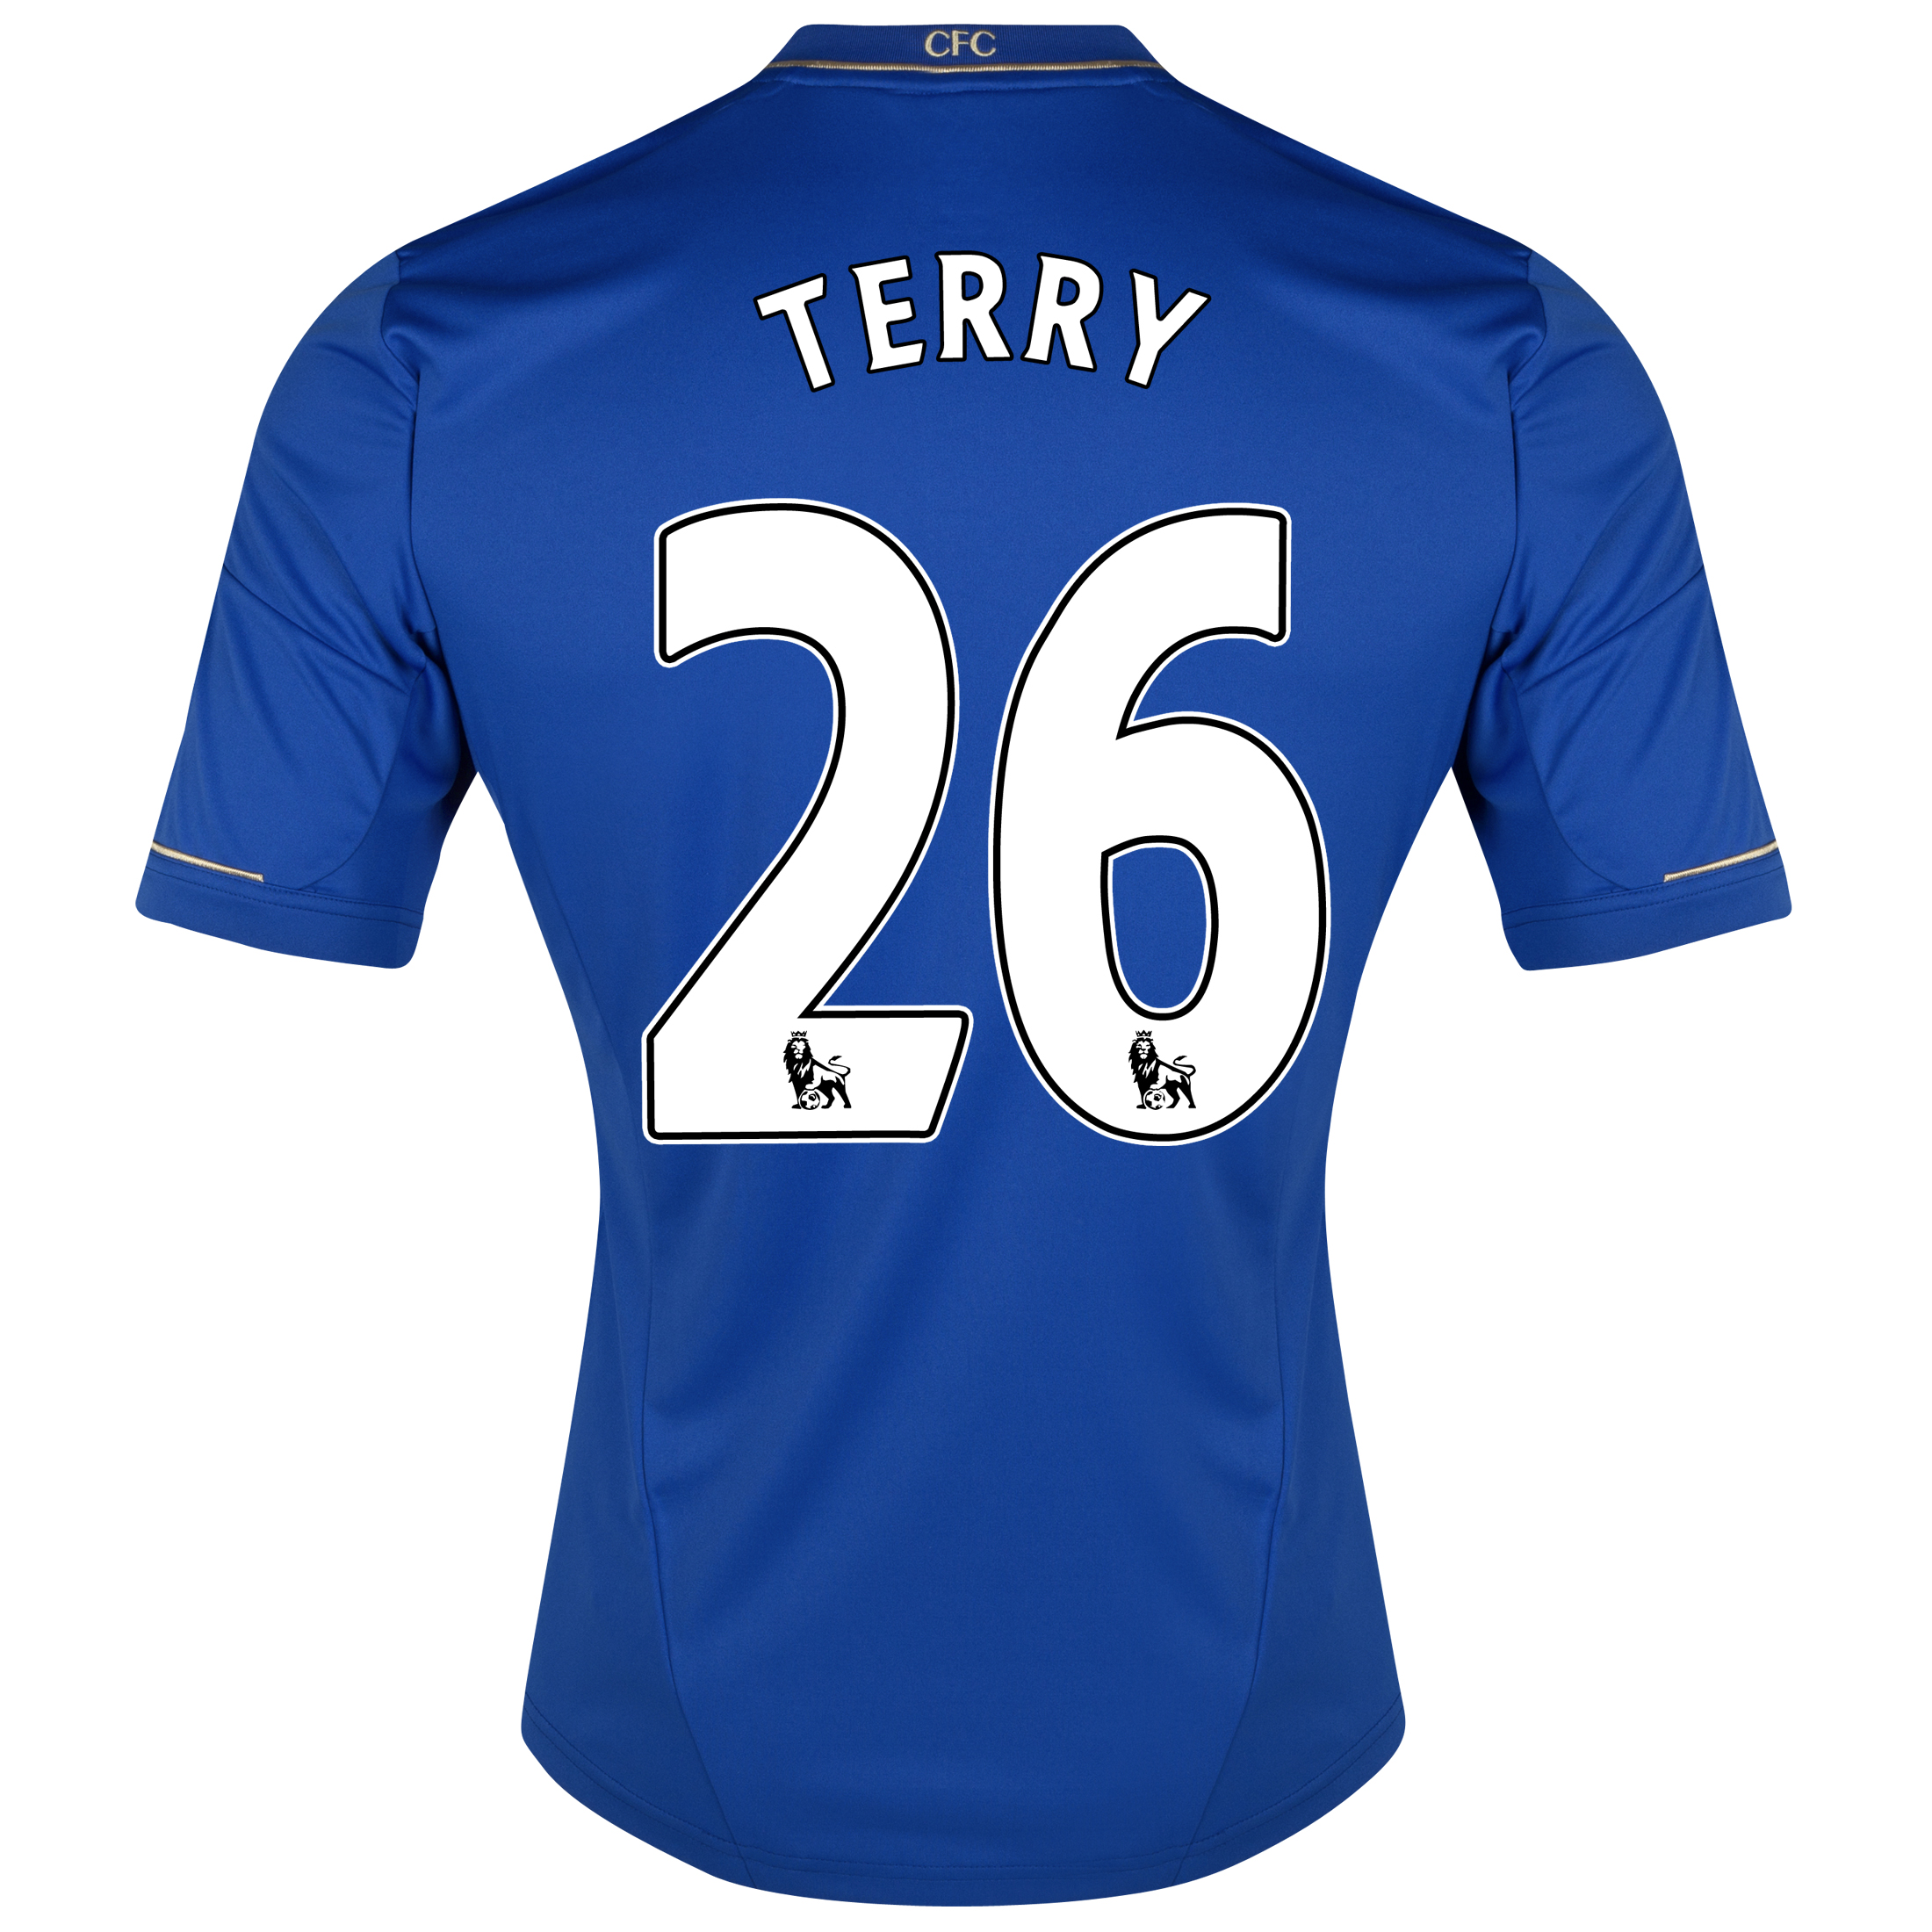 Chelsea Home Shirt 2012/13 - Outsize with Terry 26 printing